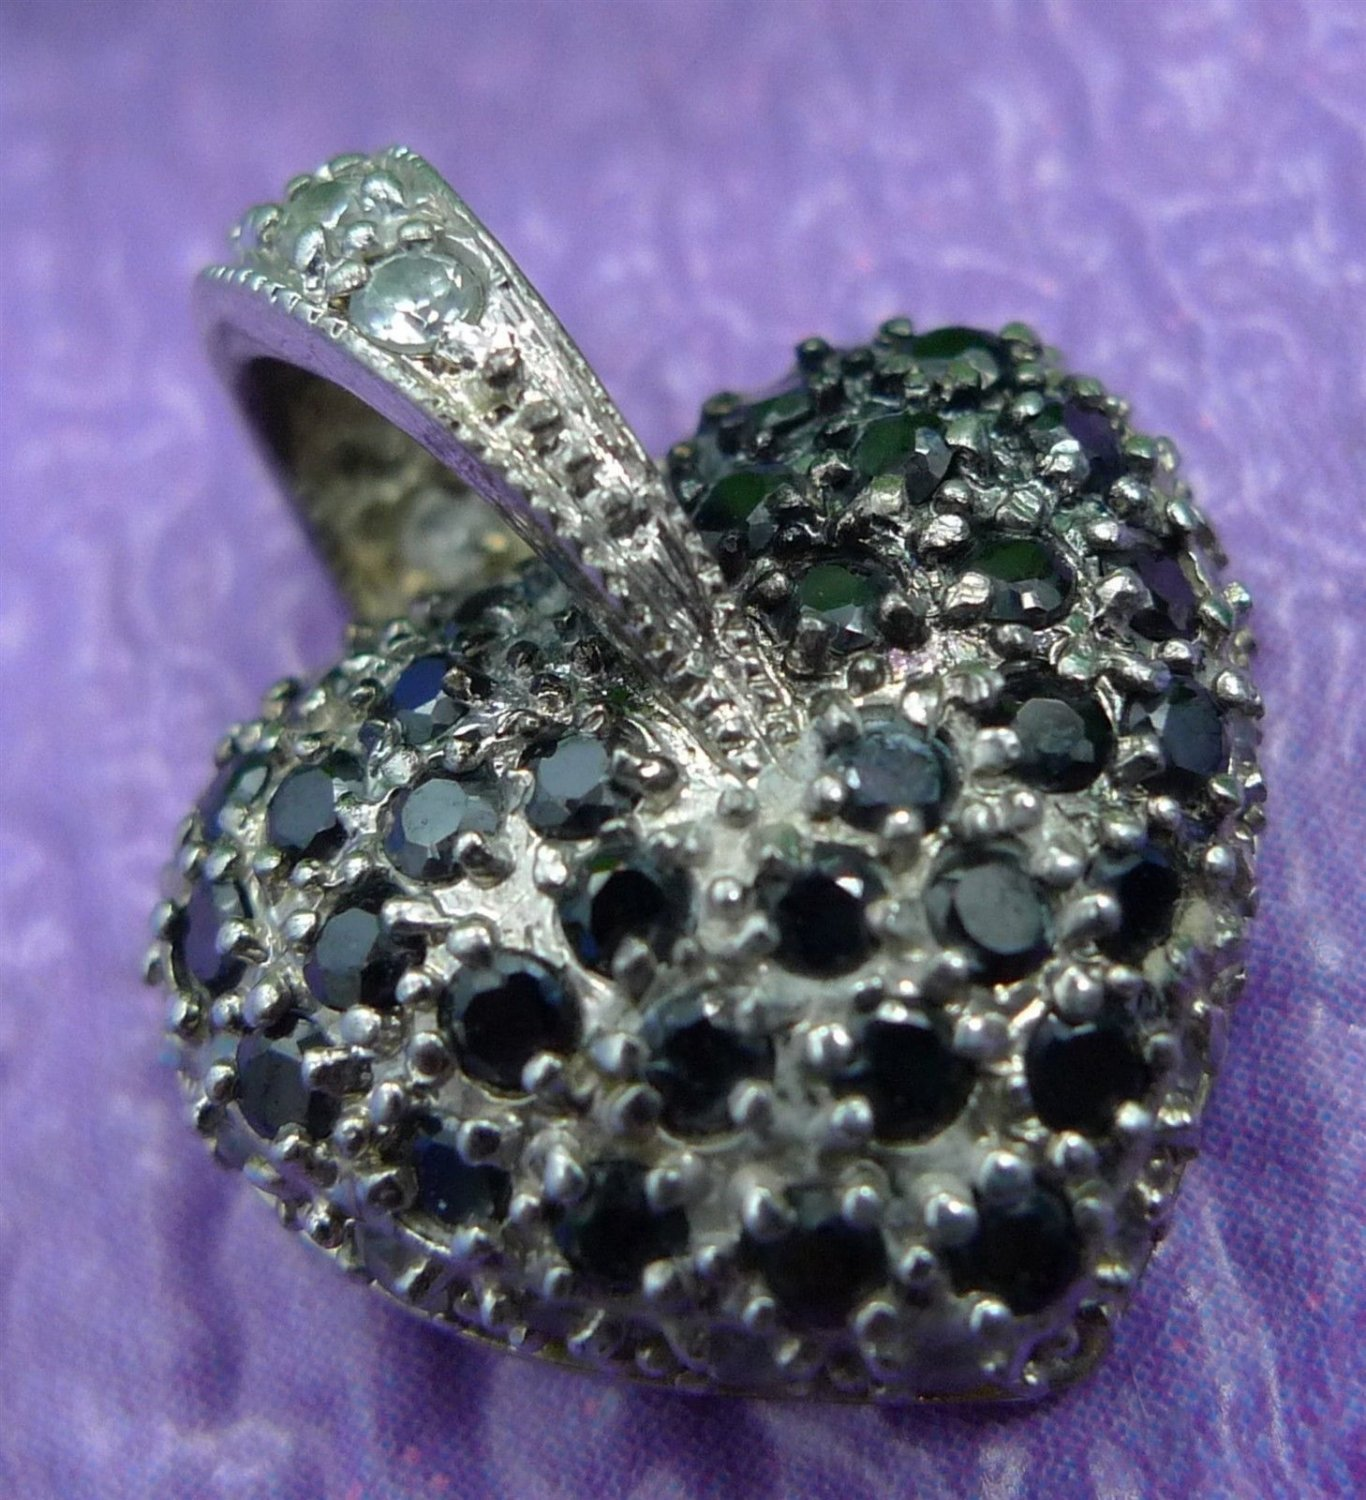 Silver Heart Pendant w/ Black Or Dark Blue and White Cubic Zirconia